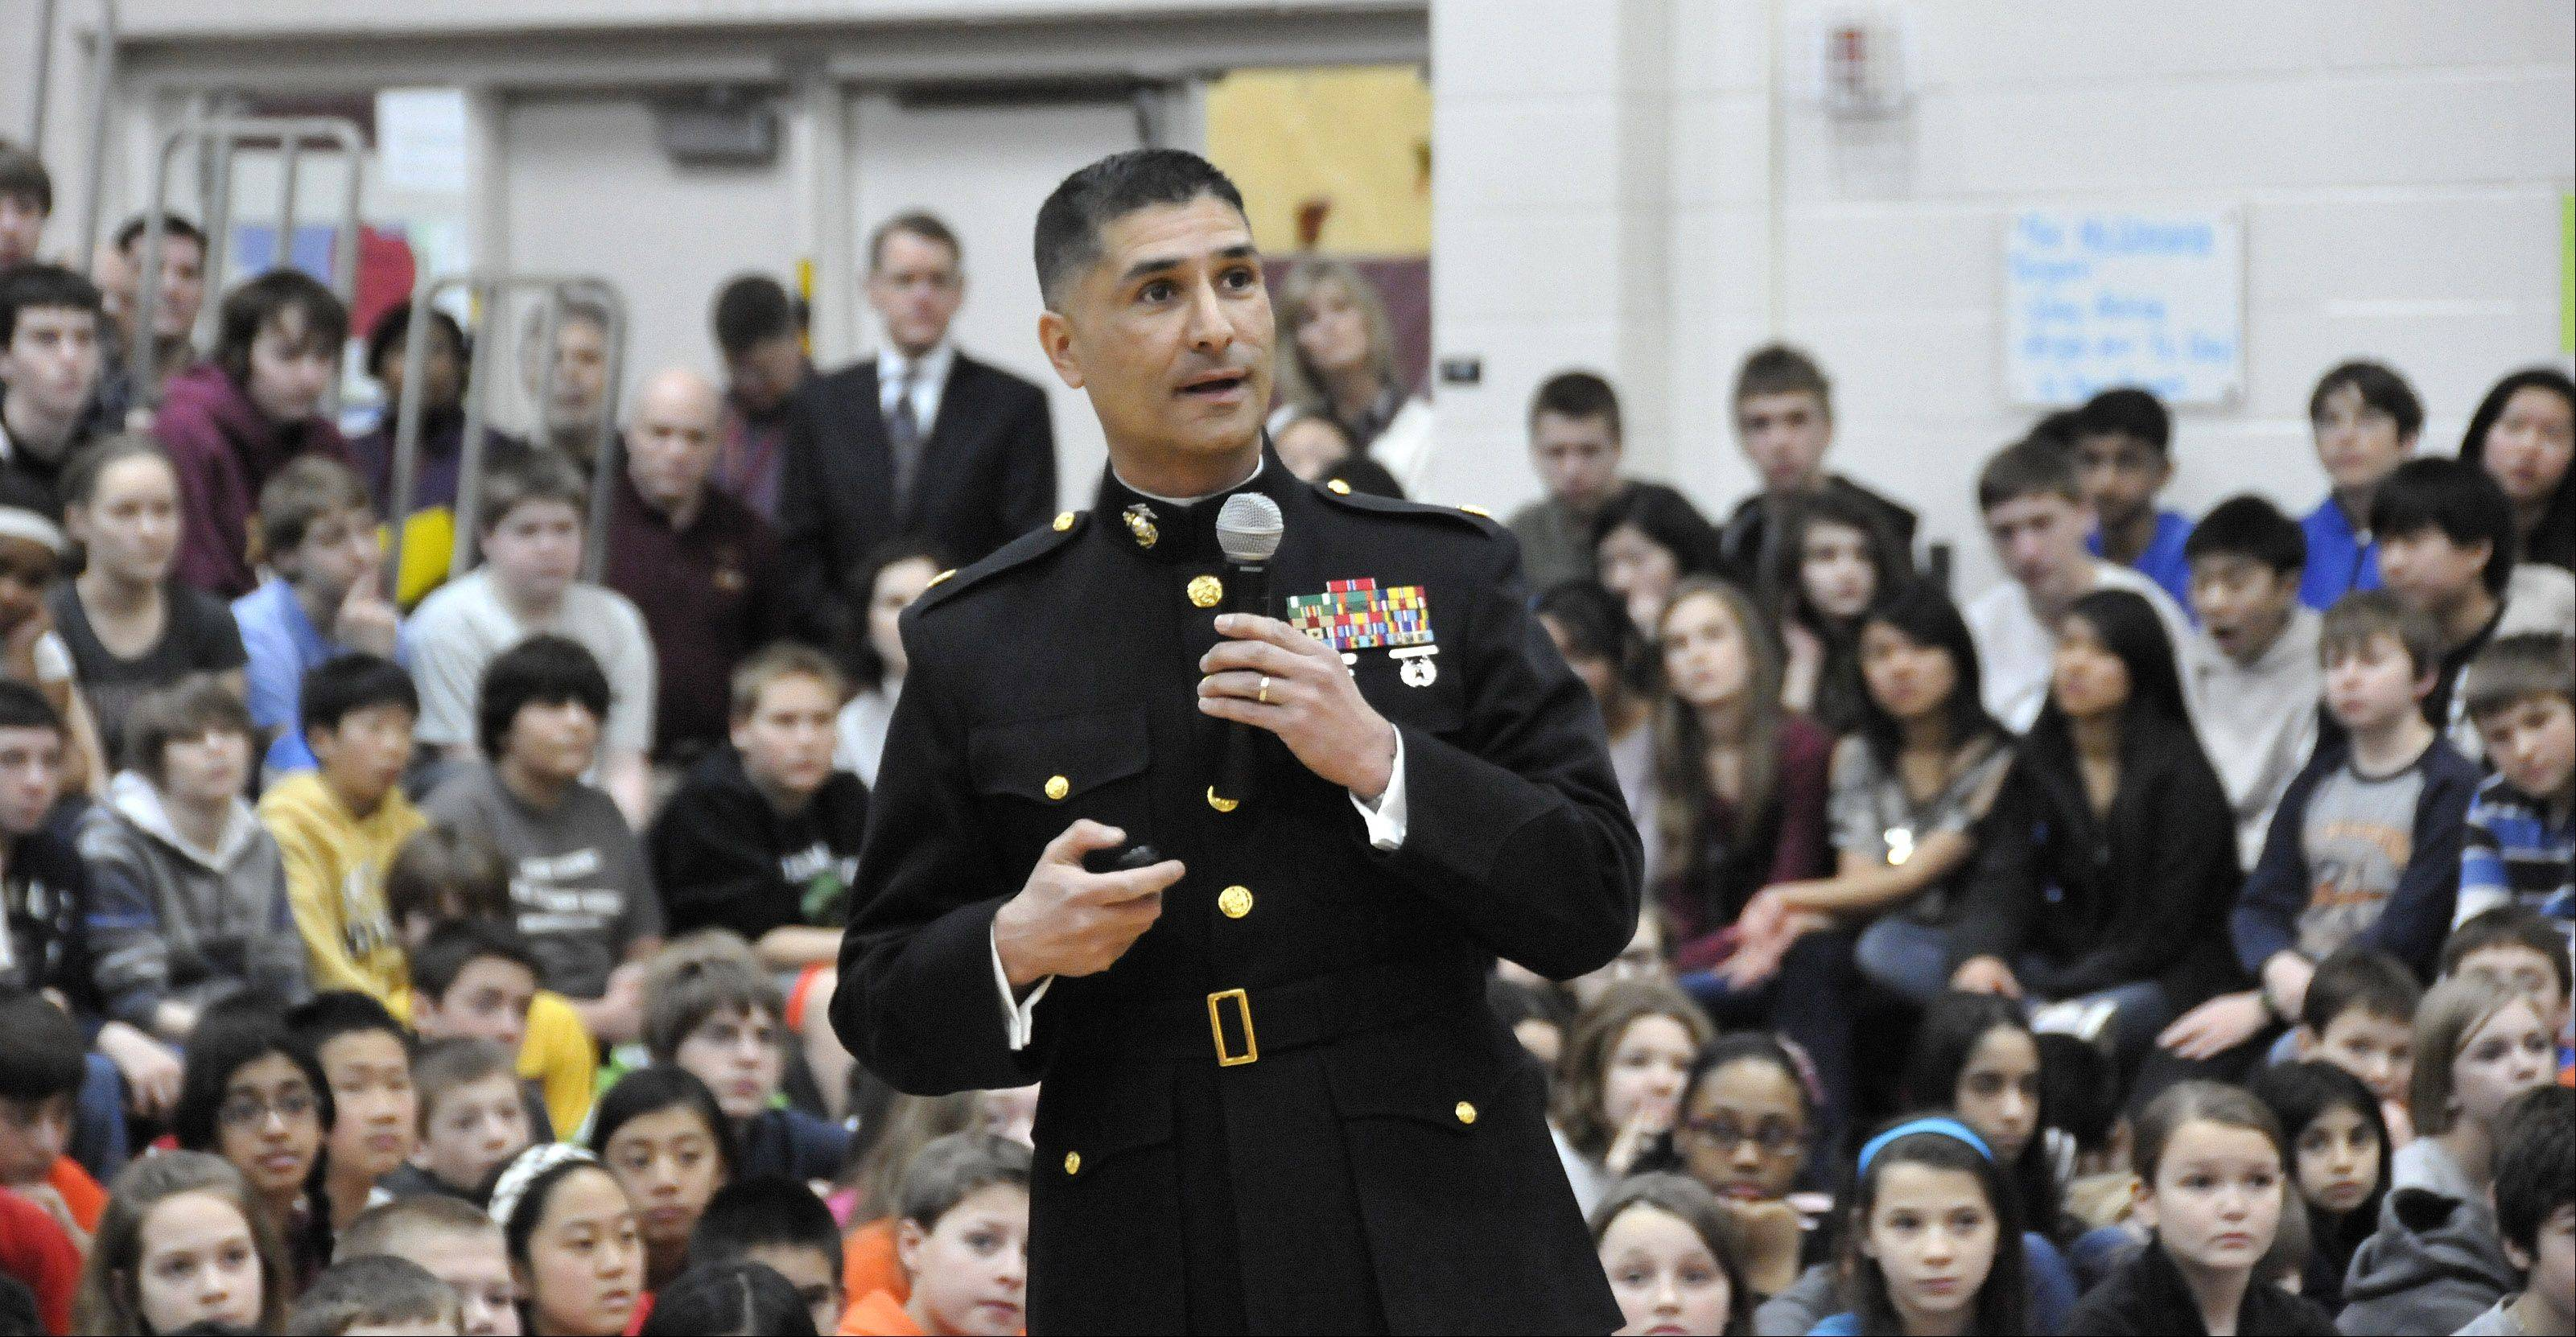 Marine Maj. Guillermo Rosales has served two tours of duty in Iraq and was awarded the Bronze Star for bravery. He's stationed in Chicago now and lives in Wheeling.